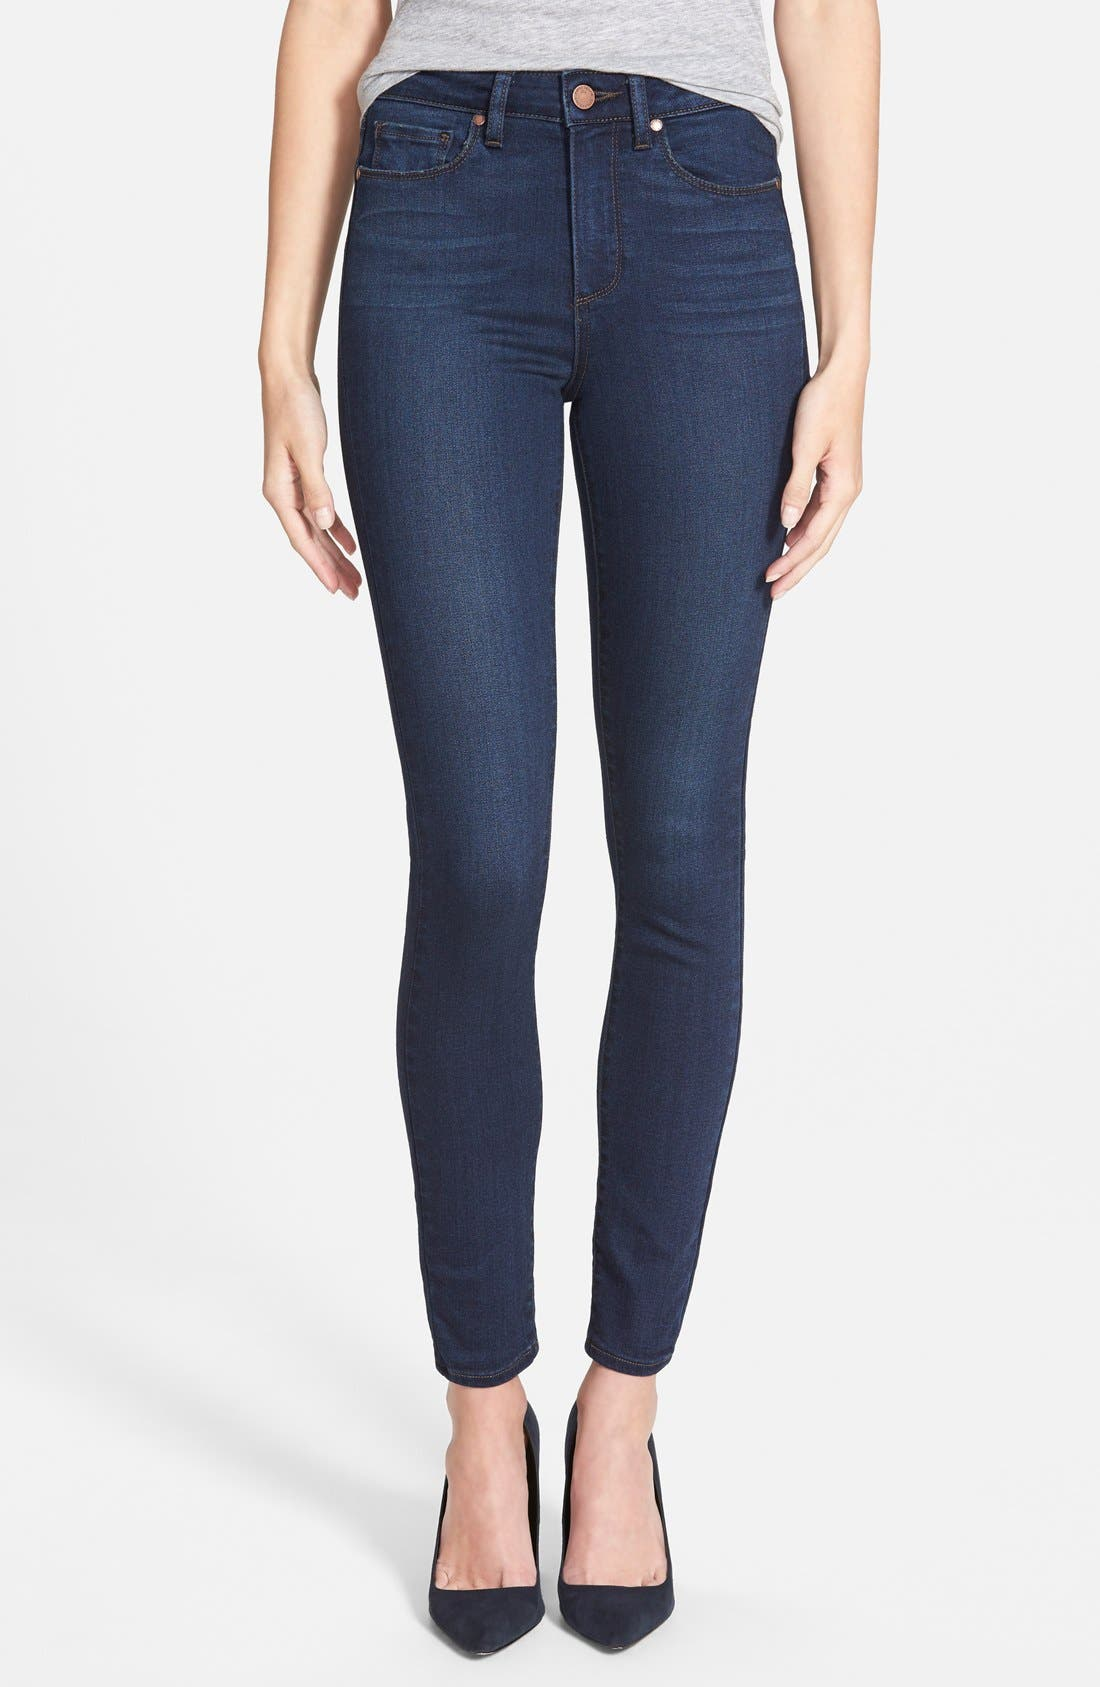 Main Image - Paige Denim 'Hoxton' High Rise Ultra Skinny Jeans (Takara) (Nordstrom Exclusive)